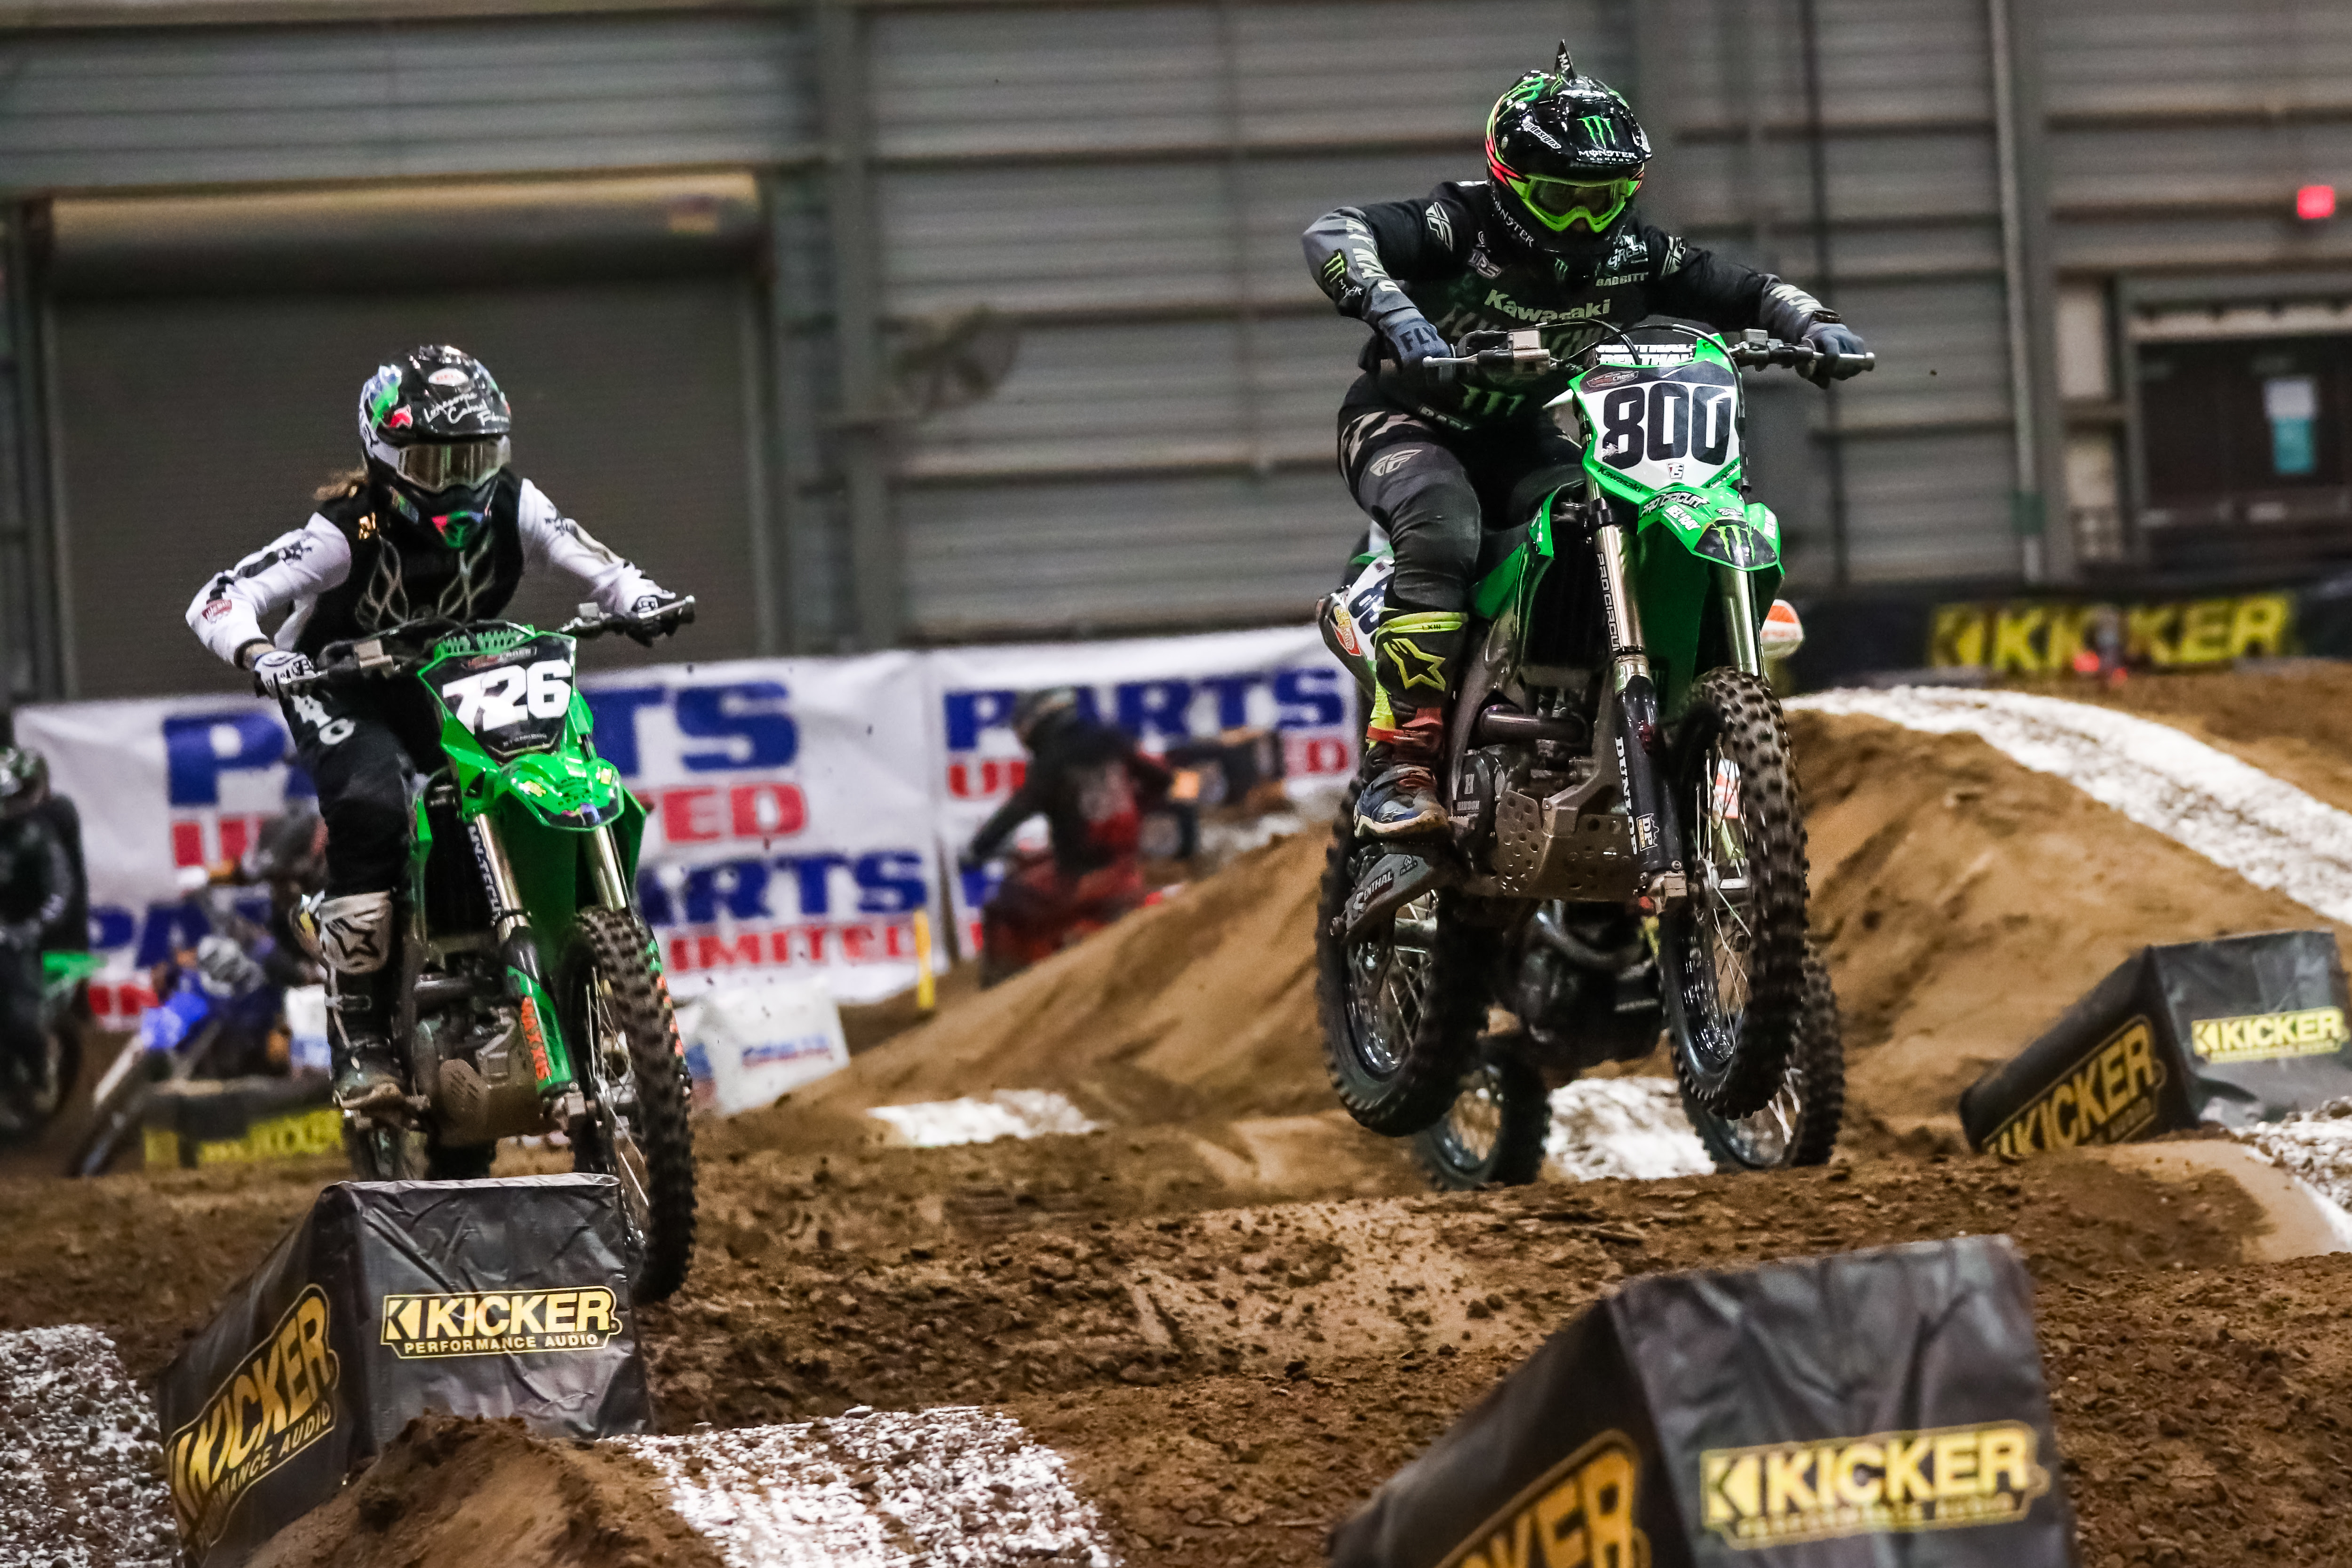 The 2021 Kicker AMA Arenacross Series debuts in Starkville